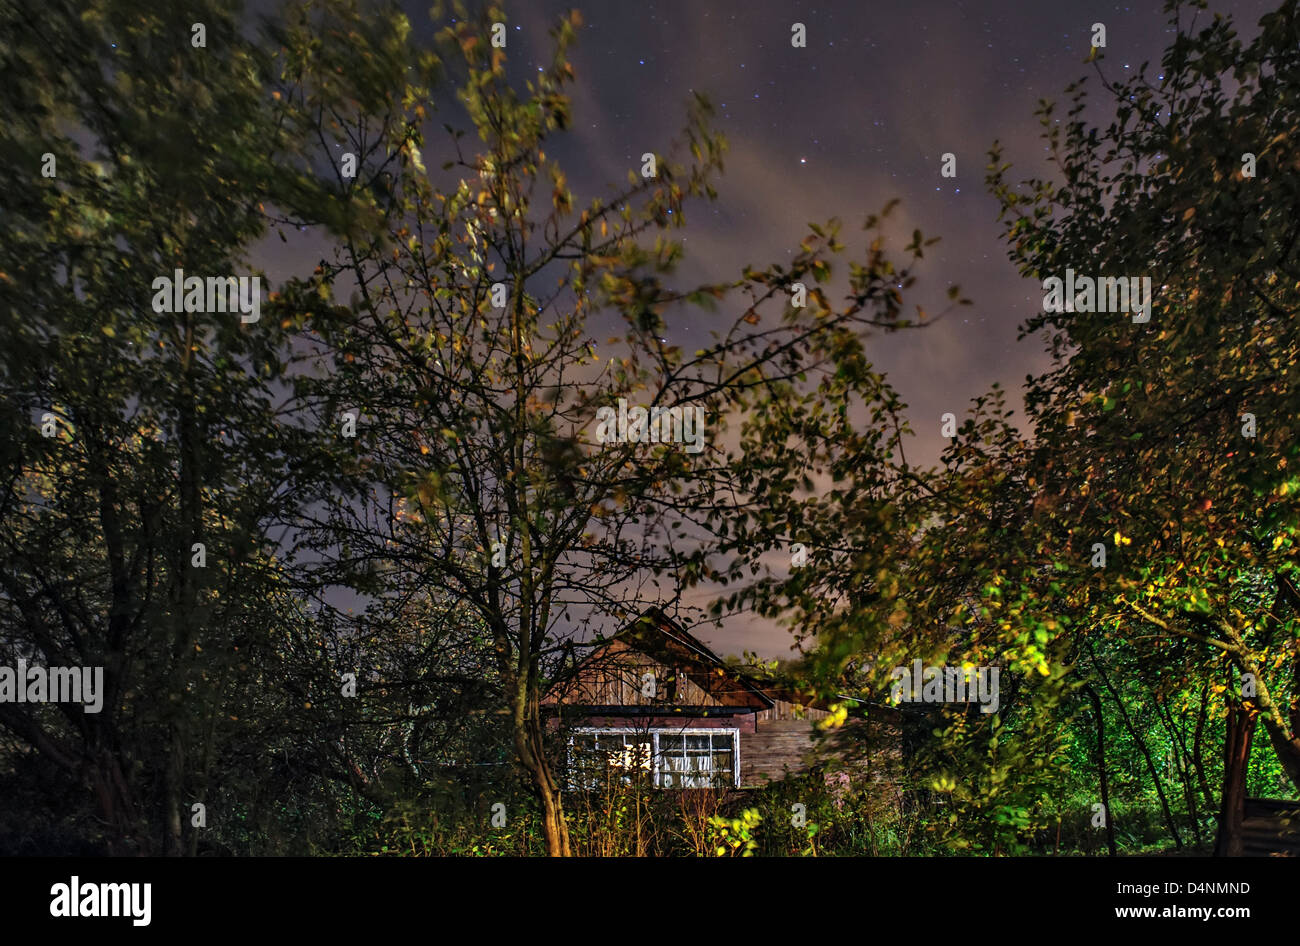 Small hut in the forest under night stars sky - Stock Image